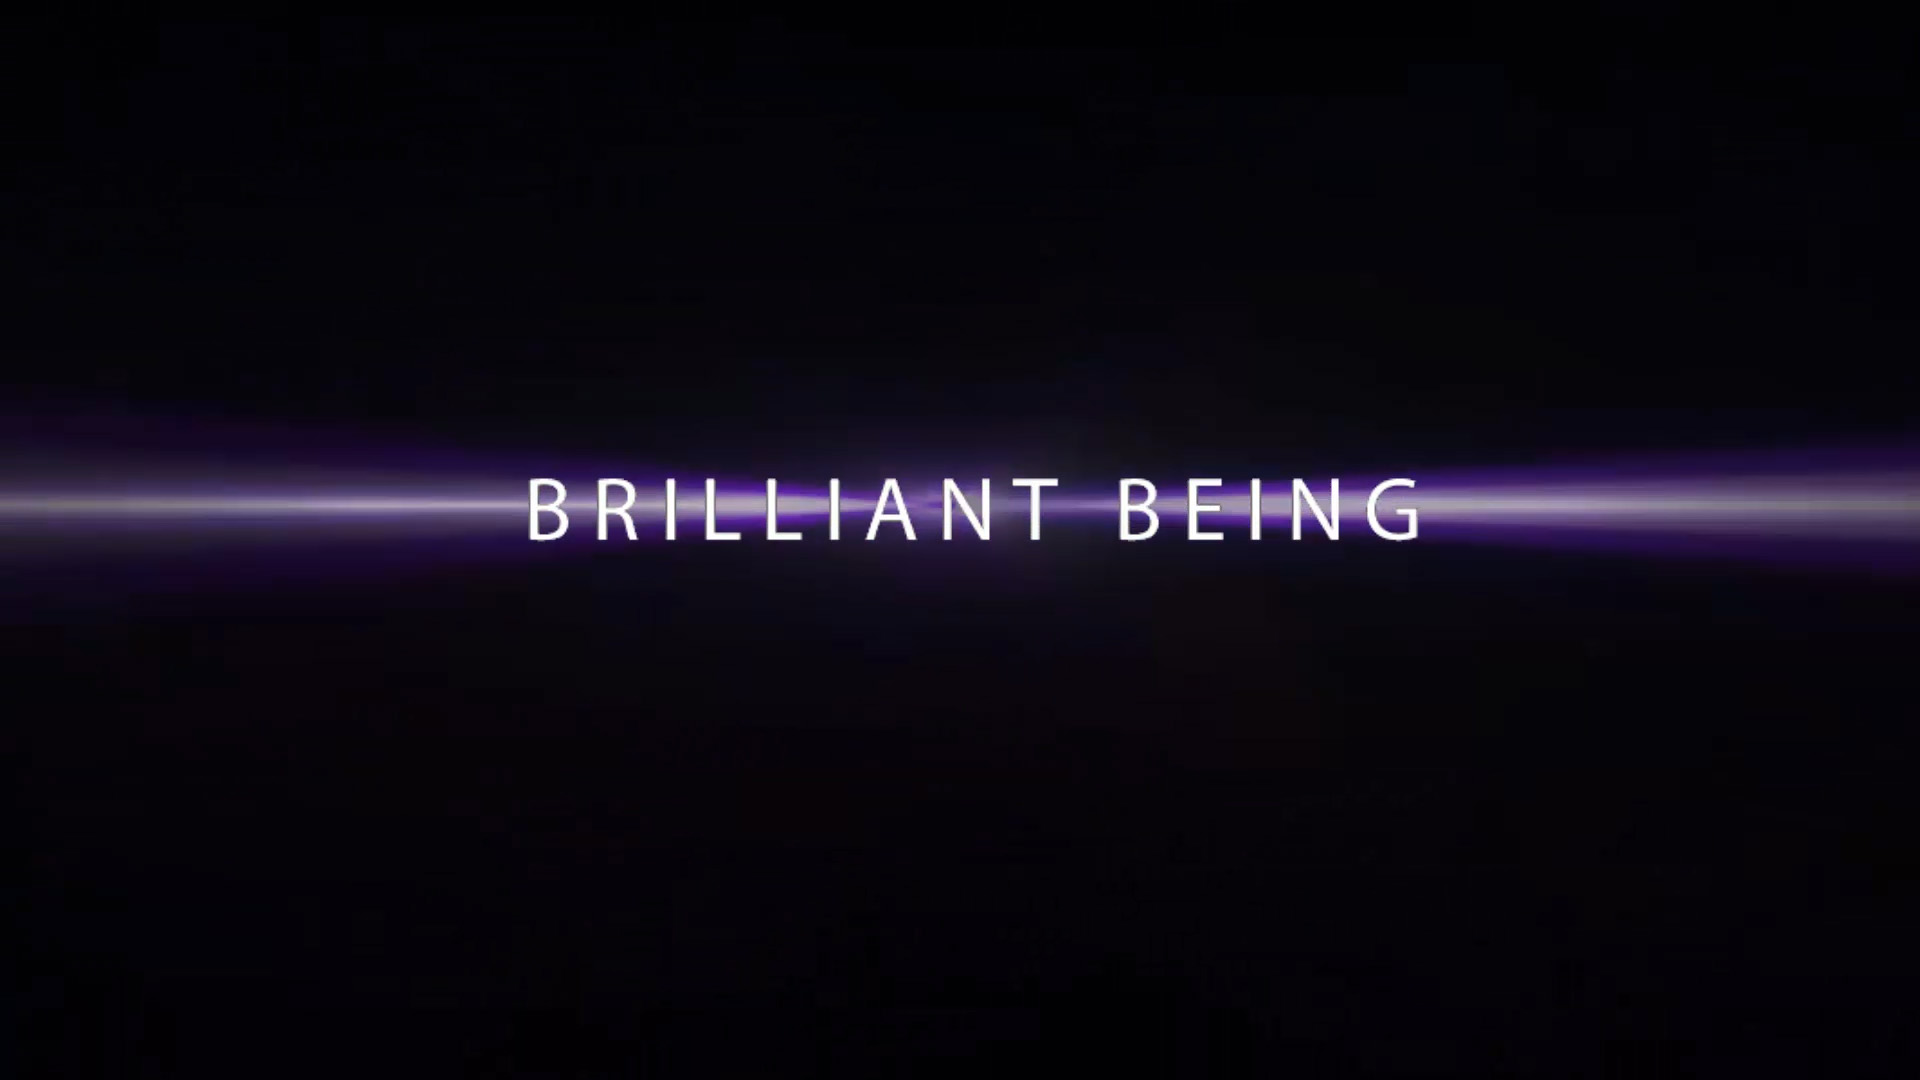 BRILLIANT BEING